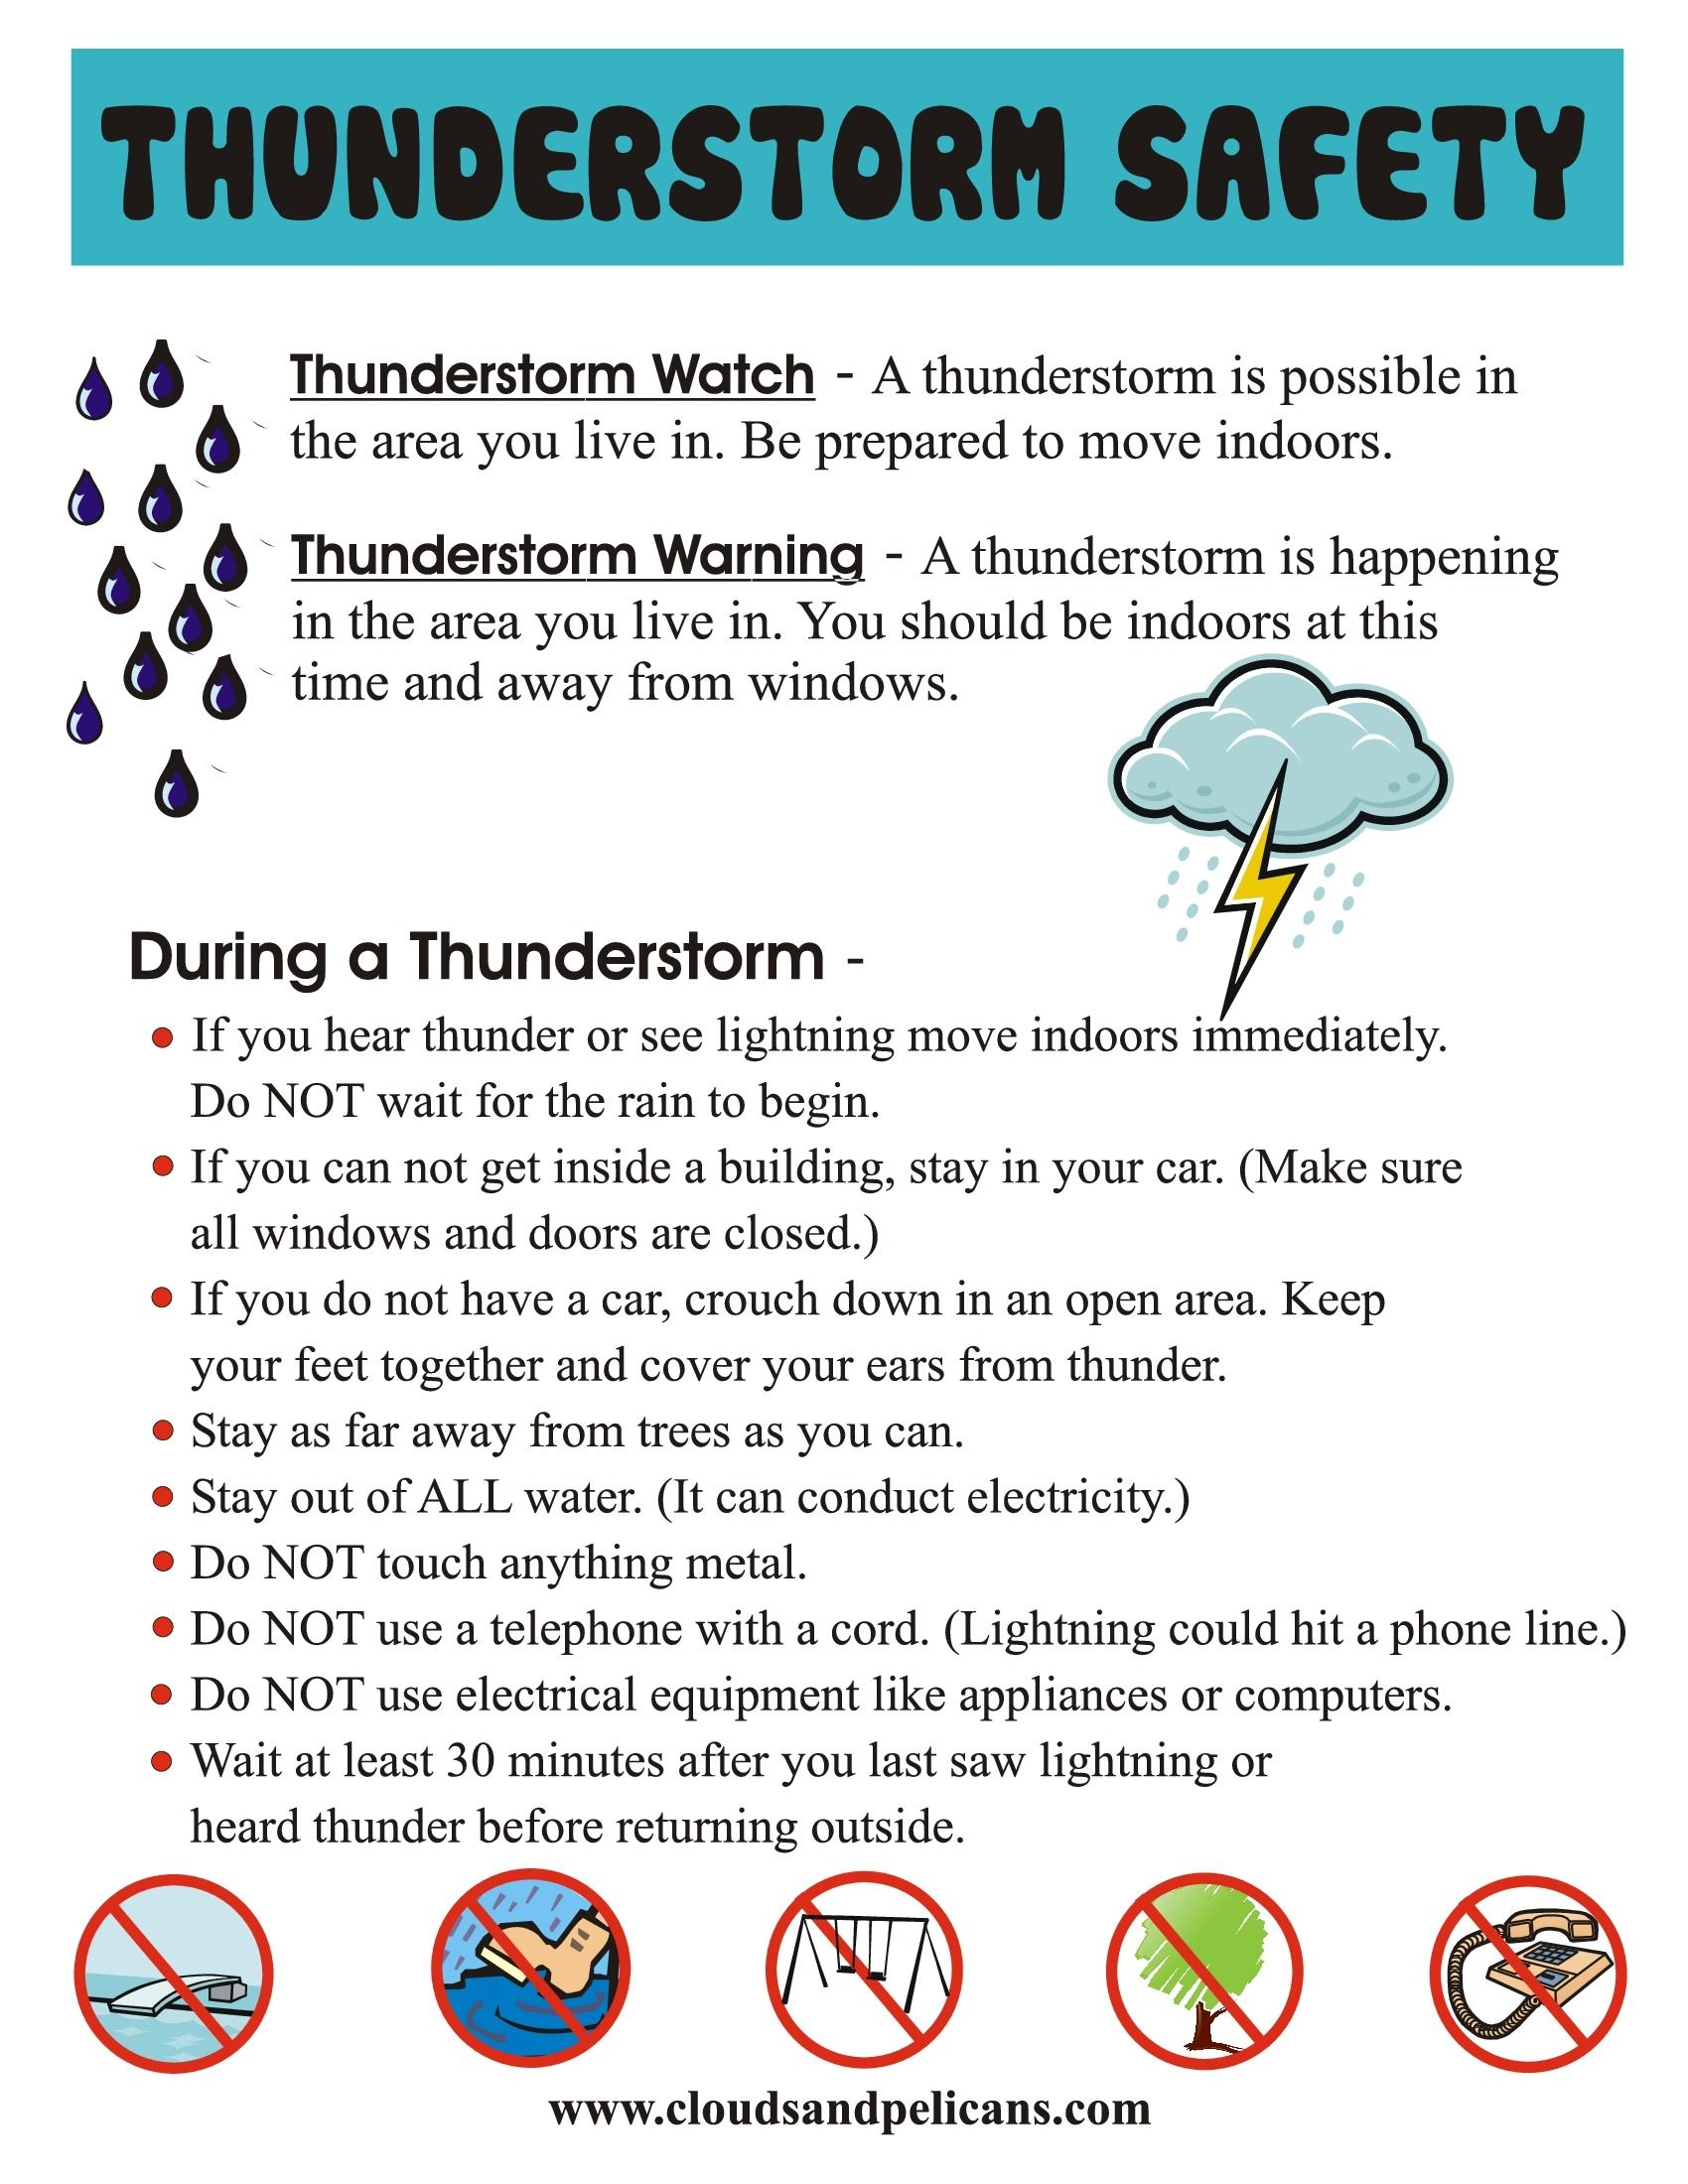 Thunderstorm Safety Tips work Pinterest